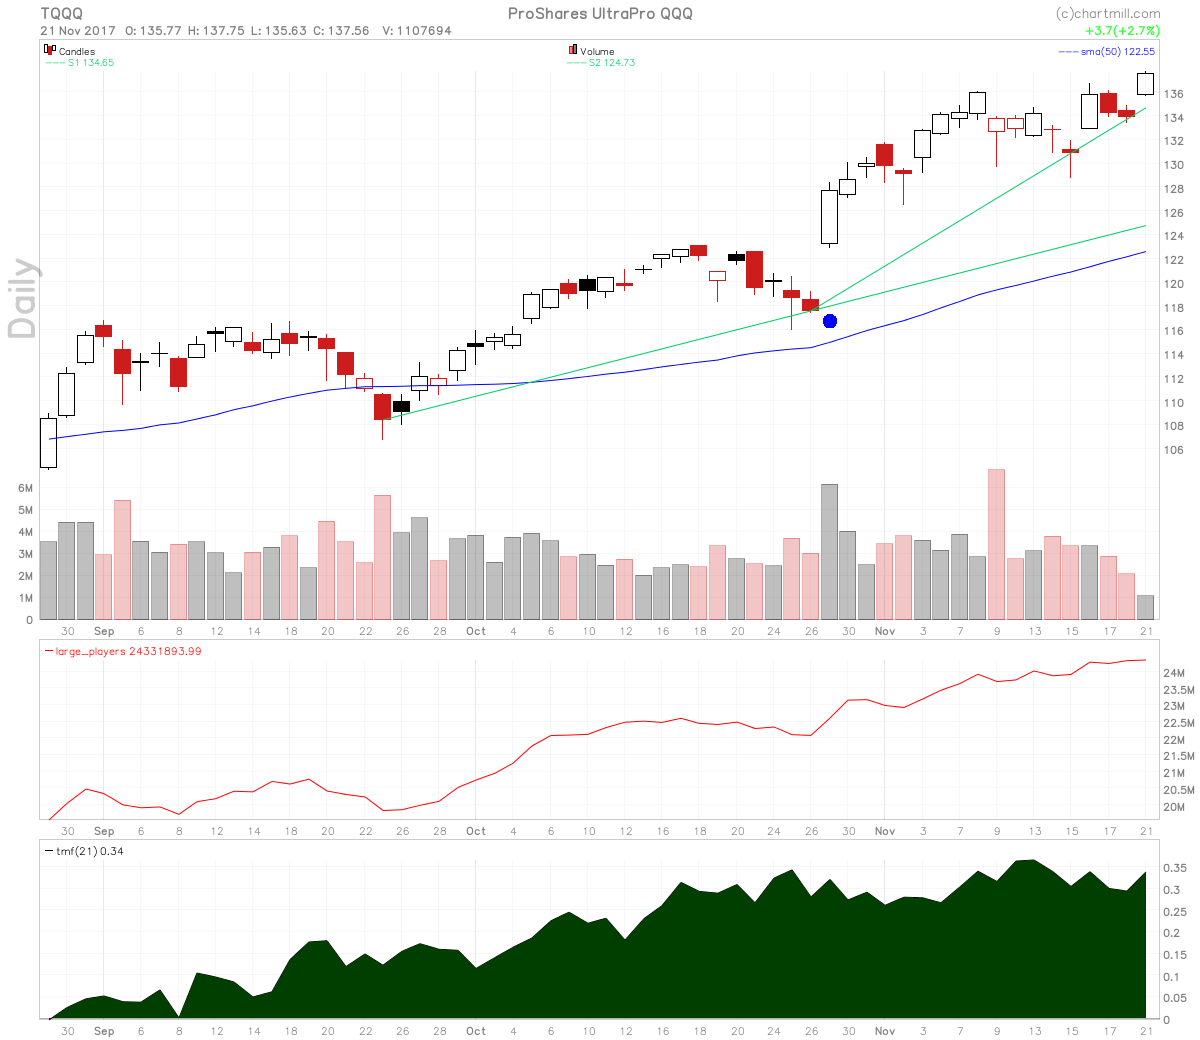 The ProShares UltraPro QQQ chart shows surging large players volume.